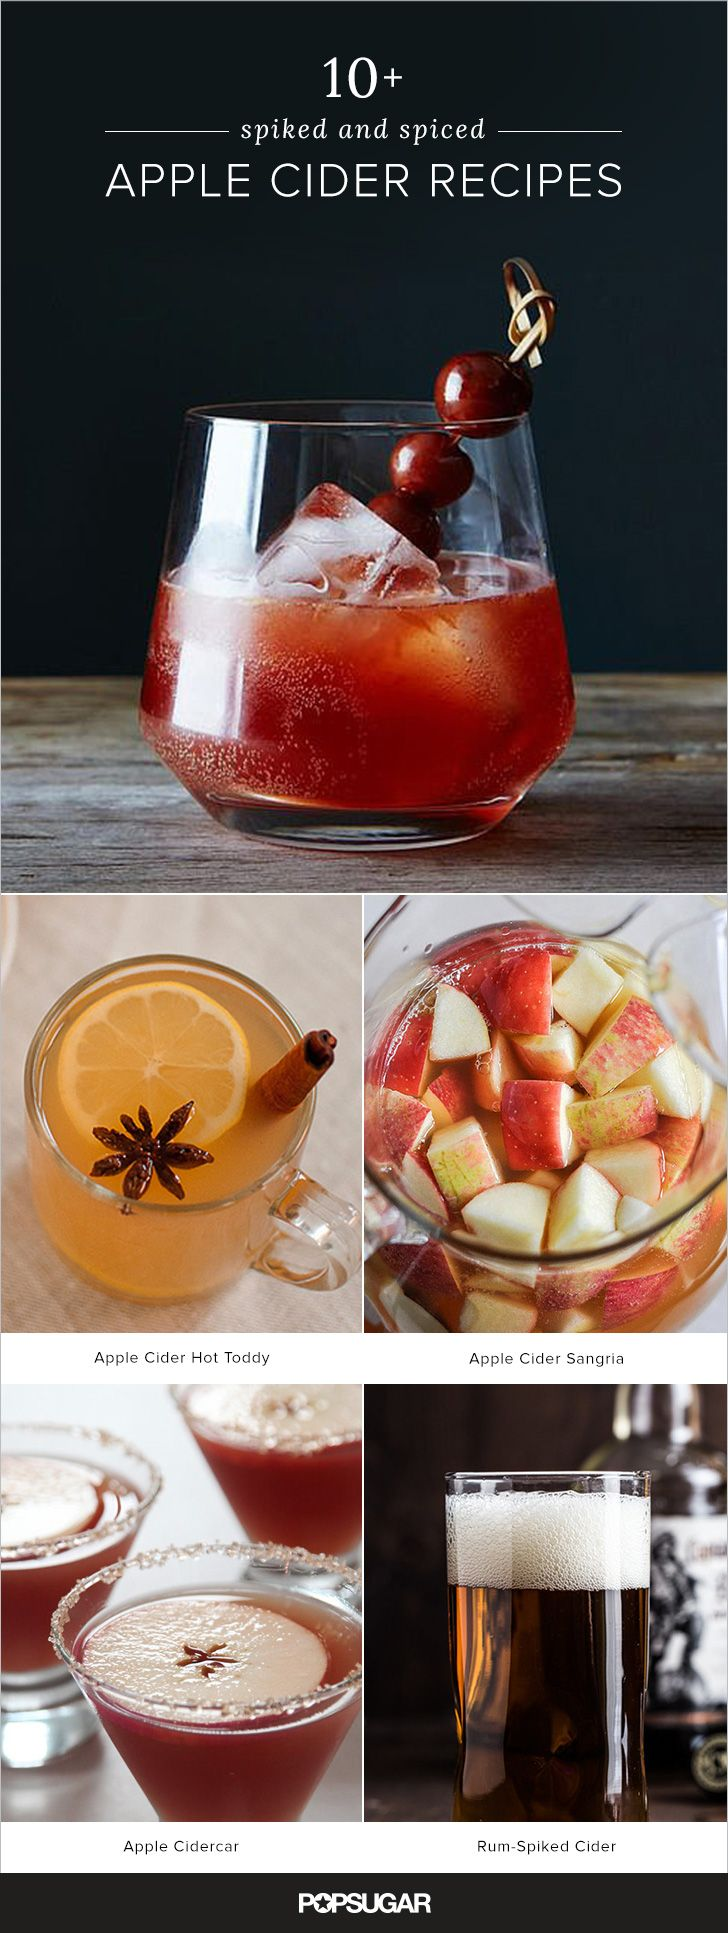 Few things feel more autumnal than spiced cider. Add a splash —or more— of a chest-warming spirit like bourbon and it's pretty much the perfect thing to cozy up with. We found 11 tempting twists; try them all for a fun Fall challenge.